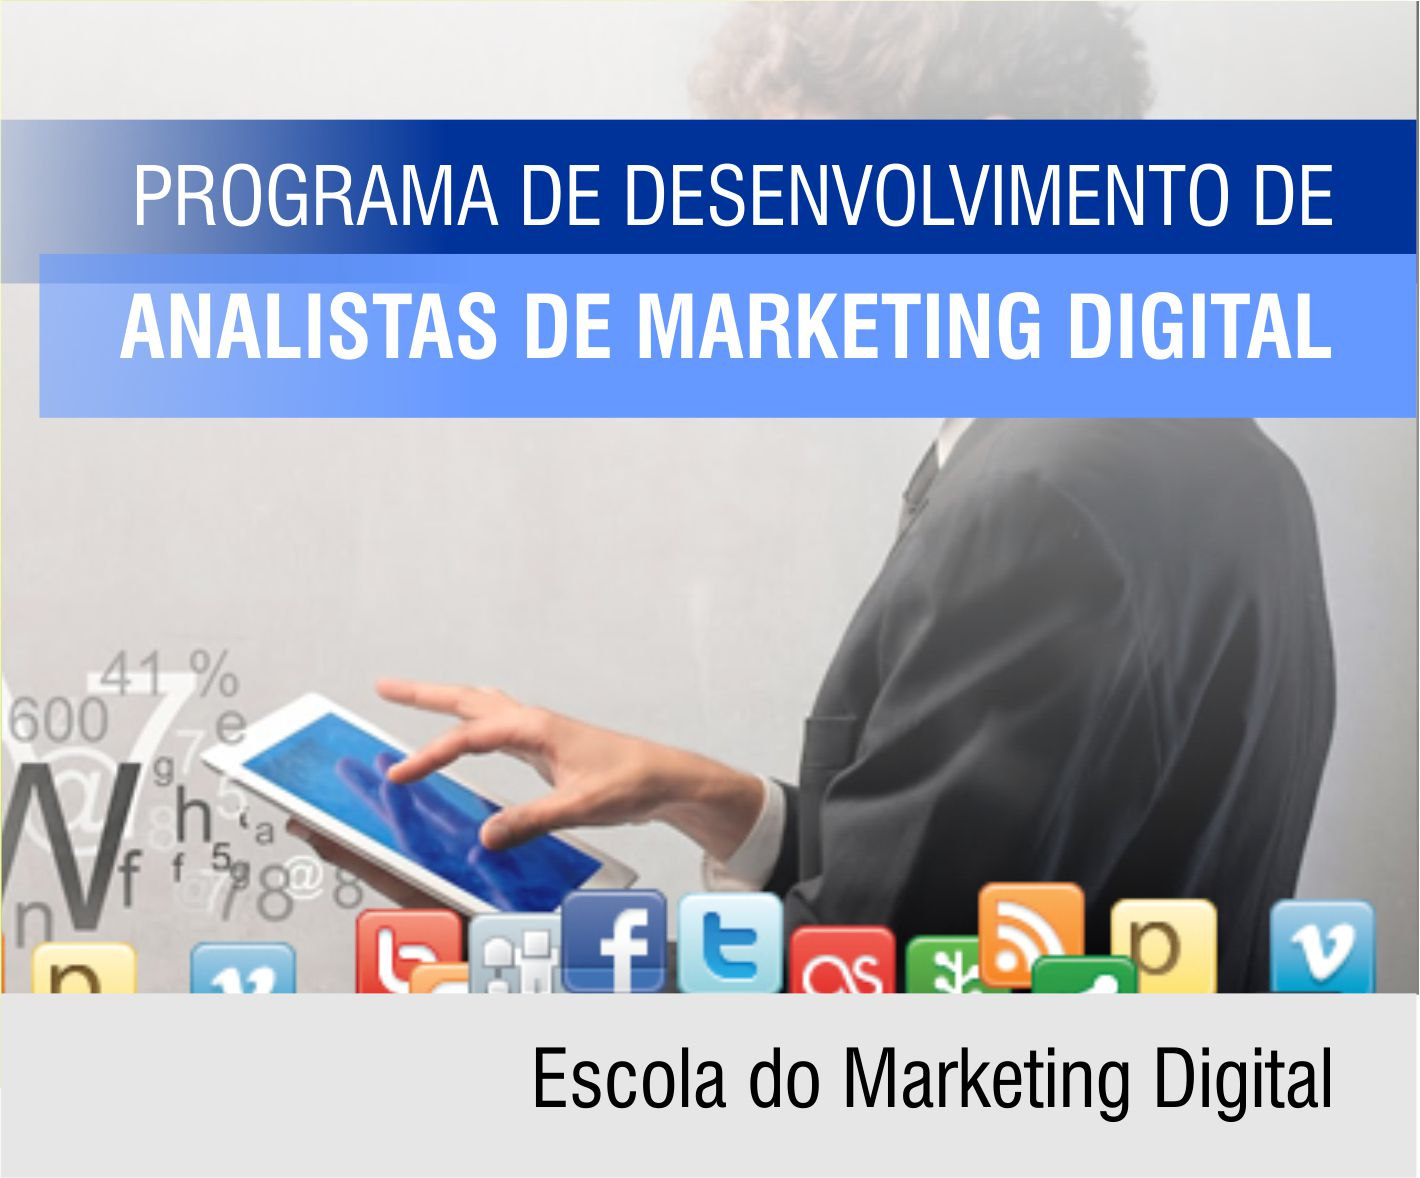 P.D. ANALISTA DE MARKETING DIGITAL